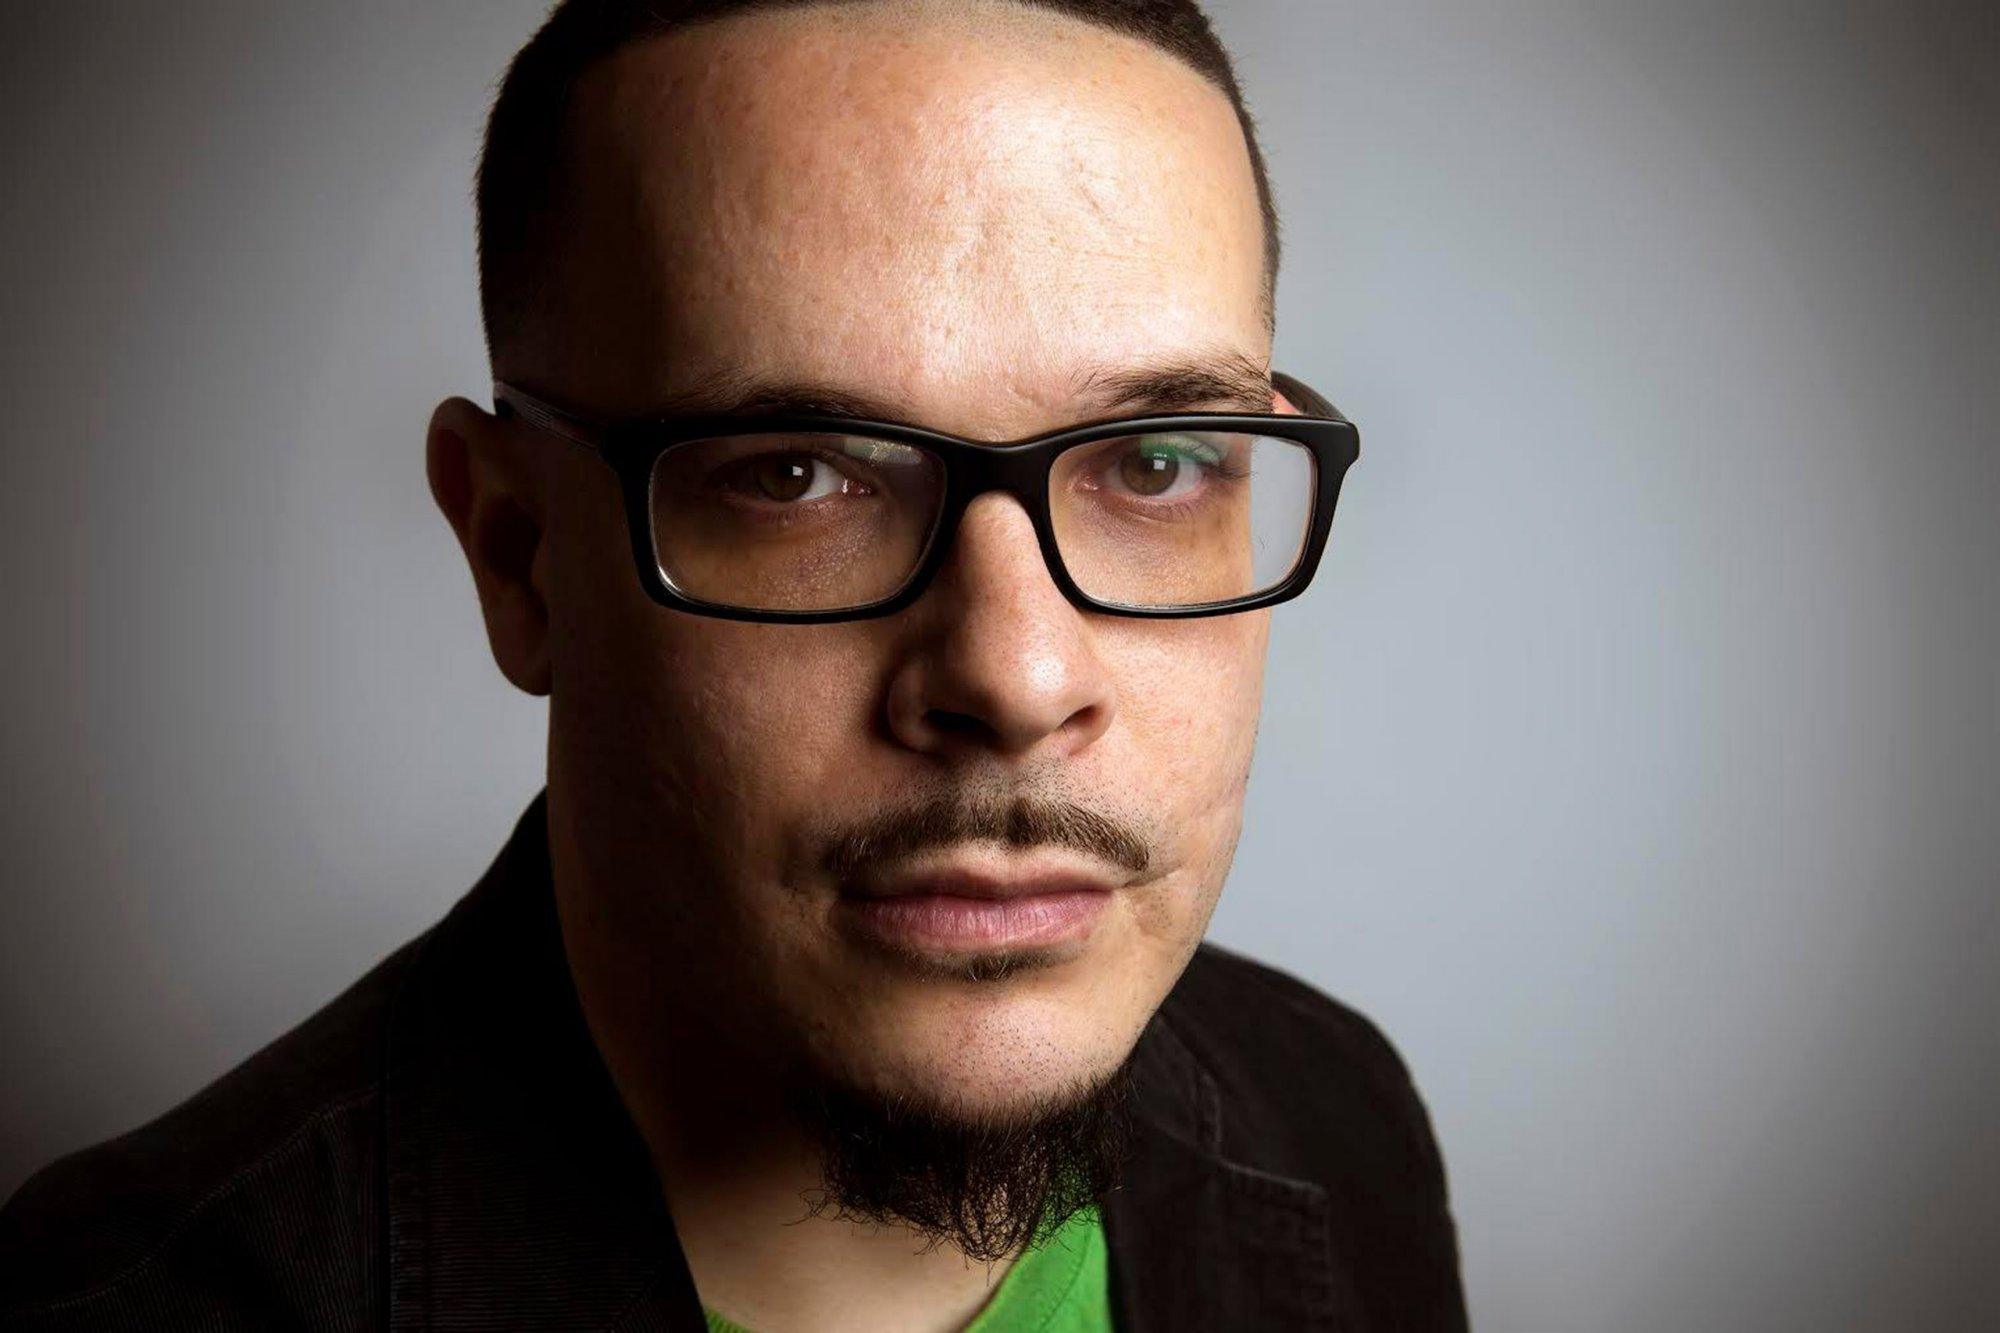 Shaun King Officially Rescheduled